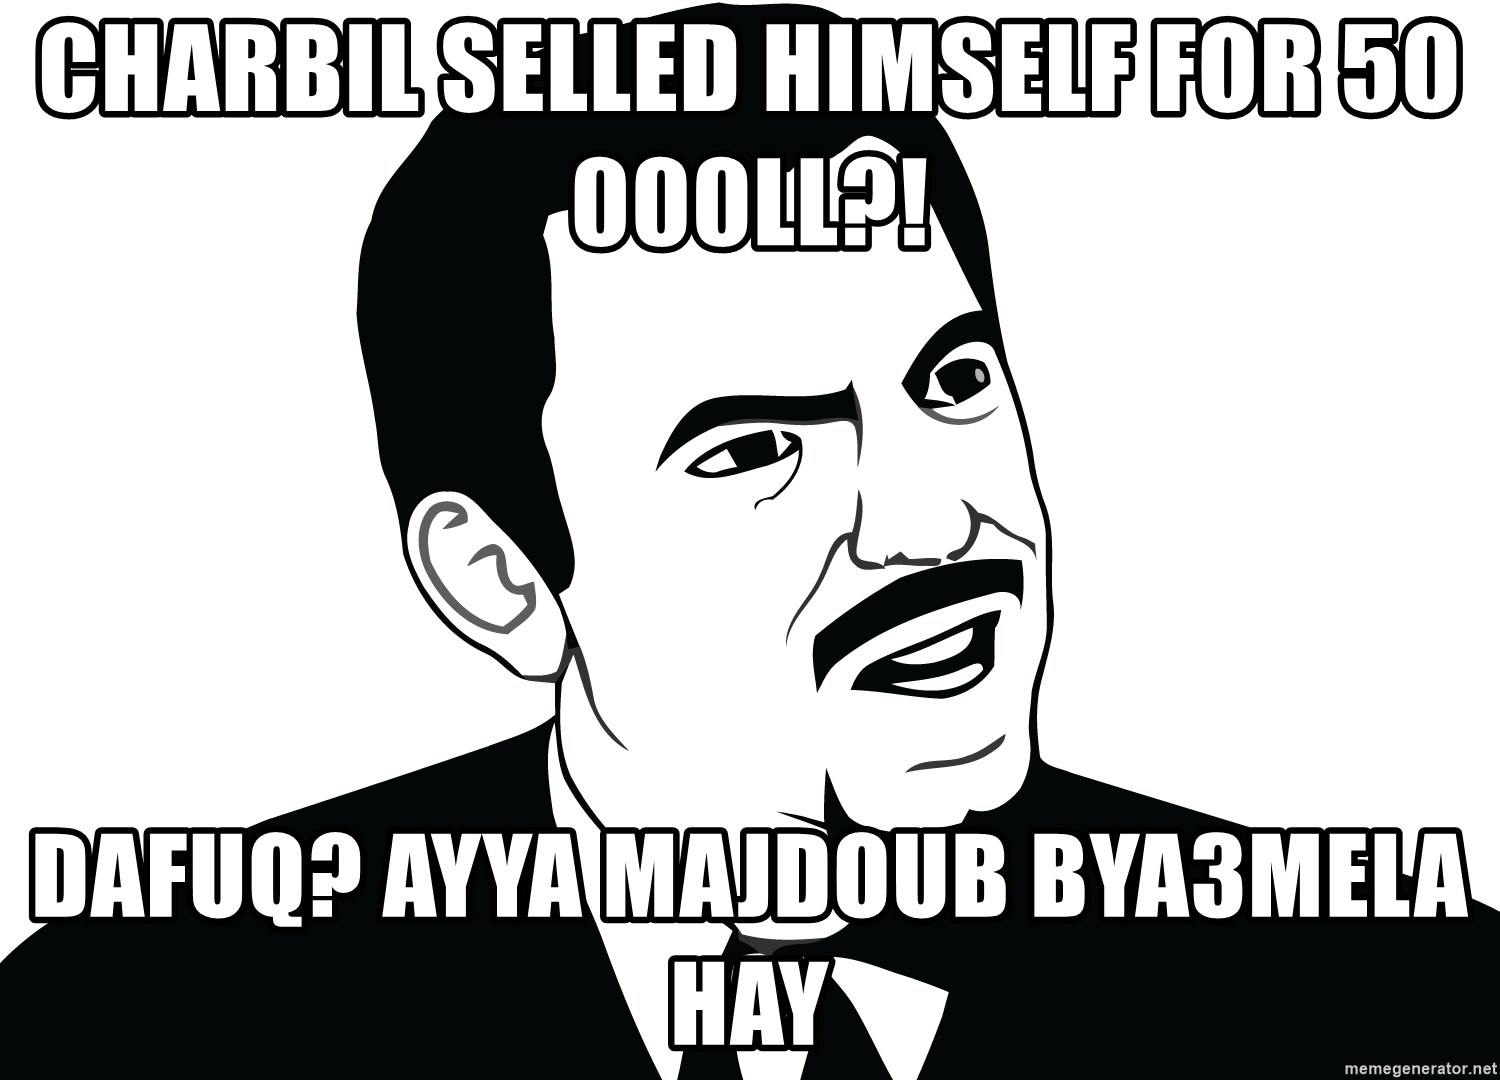 Are you serious face  - CHARBIL SELLED HIMSELF FOR 50 000LL?! DAFUQ? AYYA MAJDOUB BYA3MELA HAY